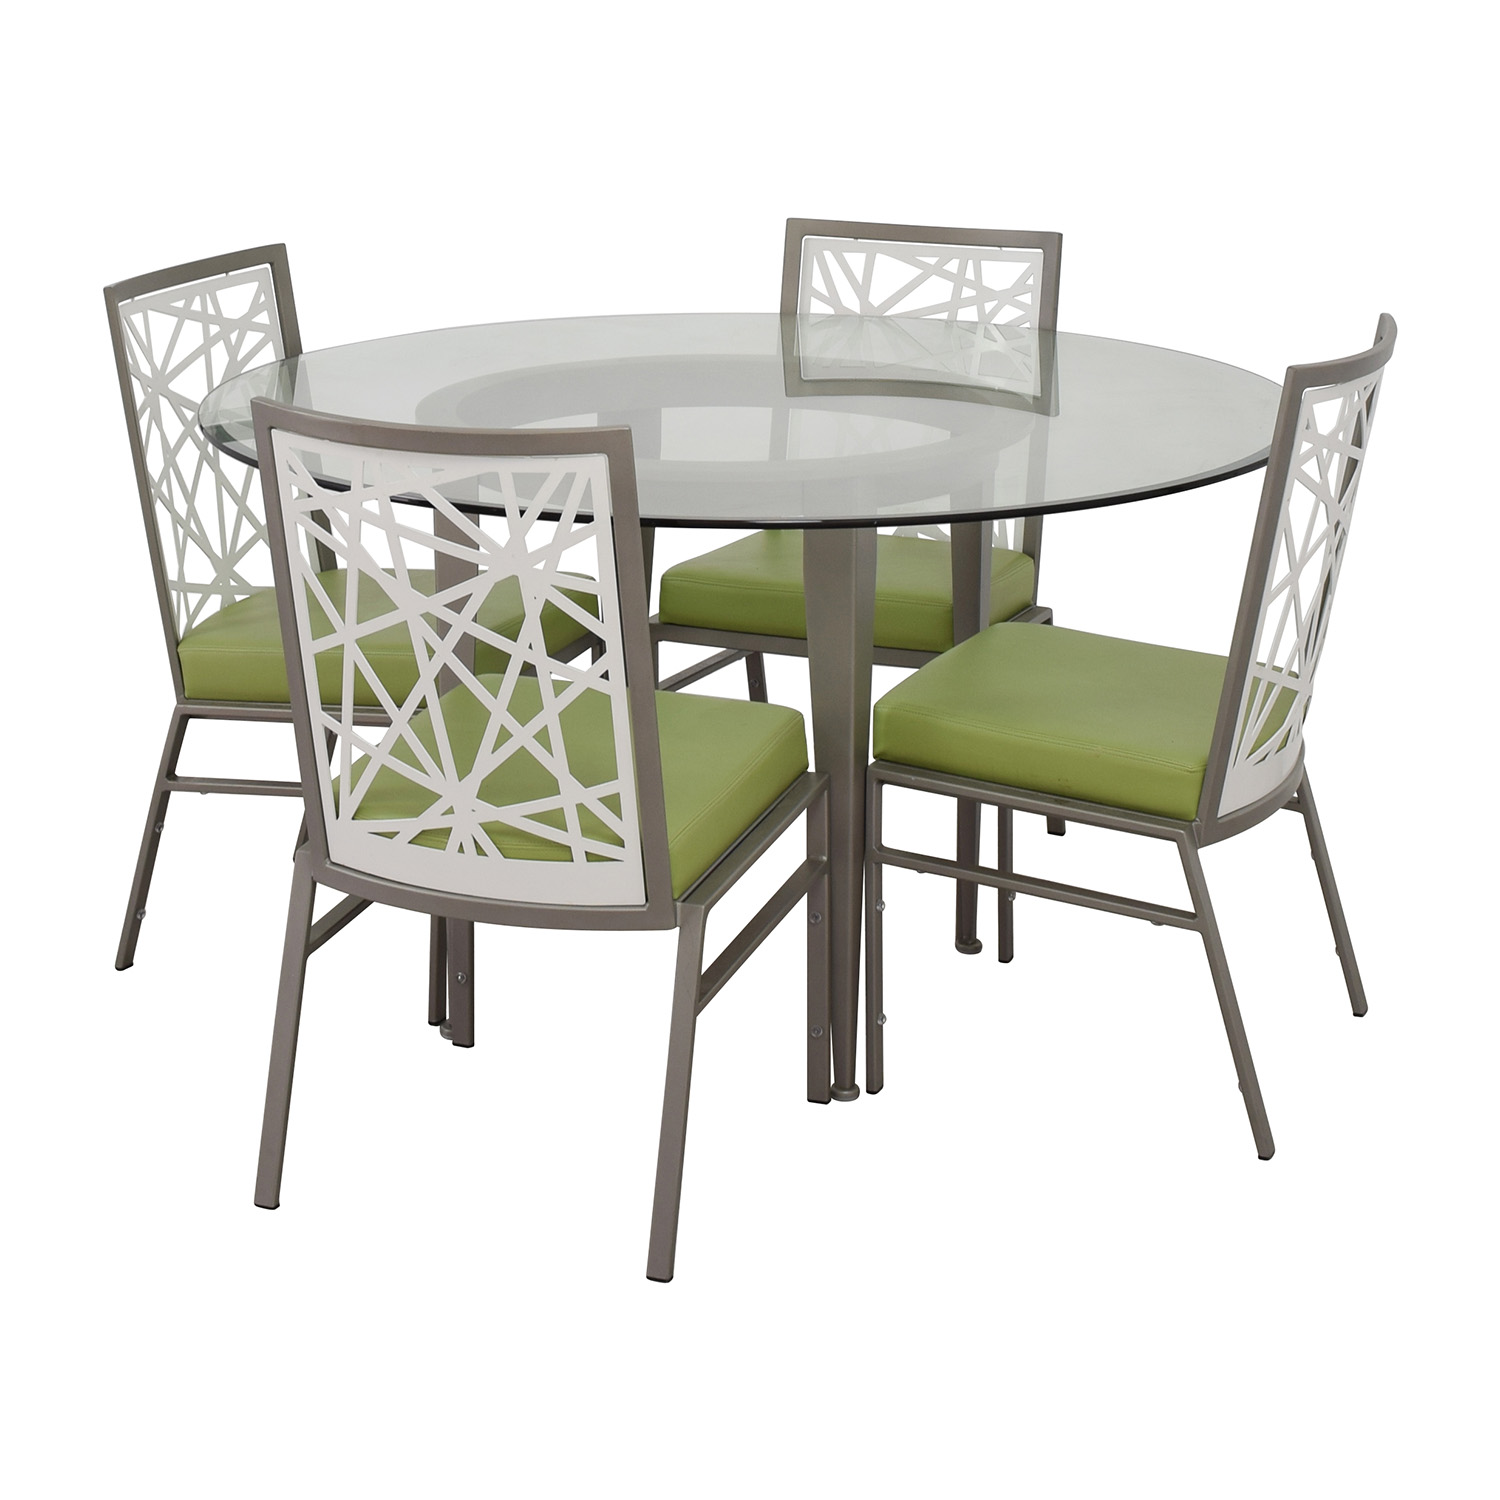 90 Off Bif Furniture Bif Furniture Silver And Green